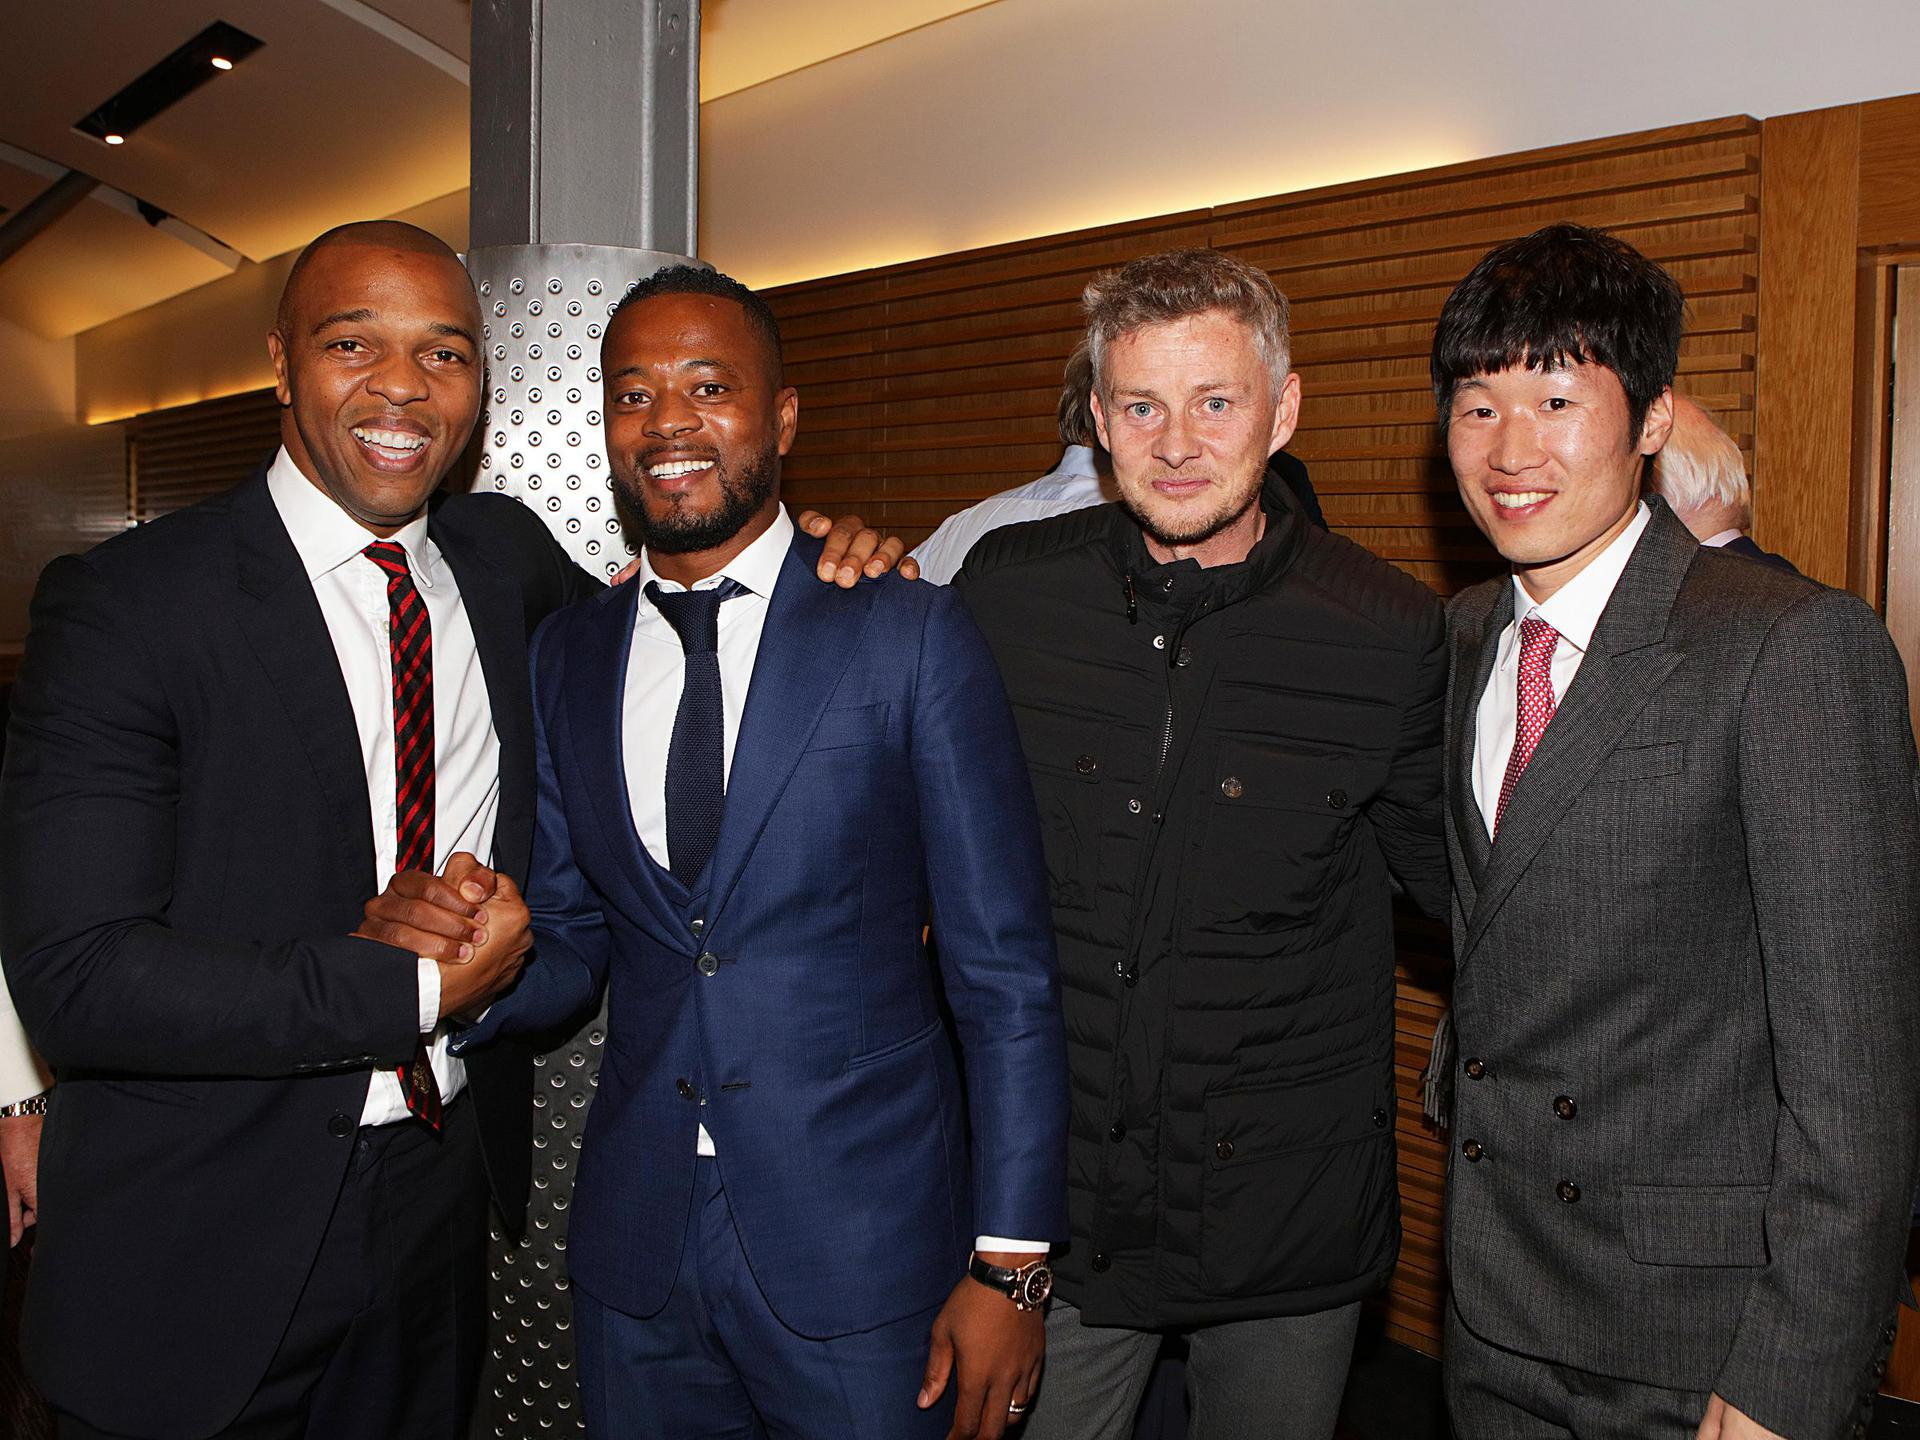 Quinton Fortune, Patrice Evra, Ole Gunnar Solskjaer and Park Ji-sung at Old Trafford.